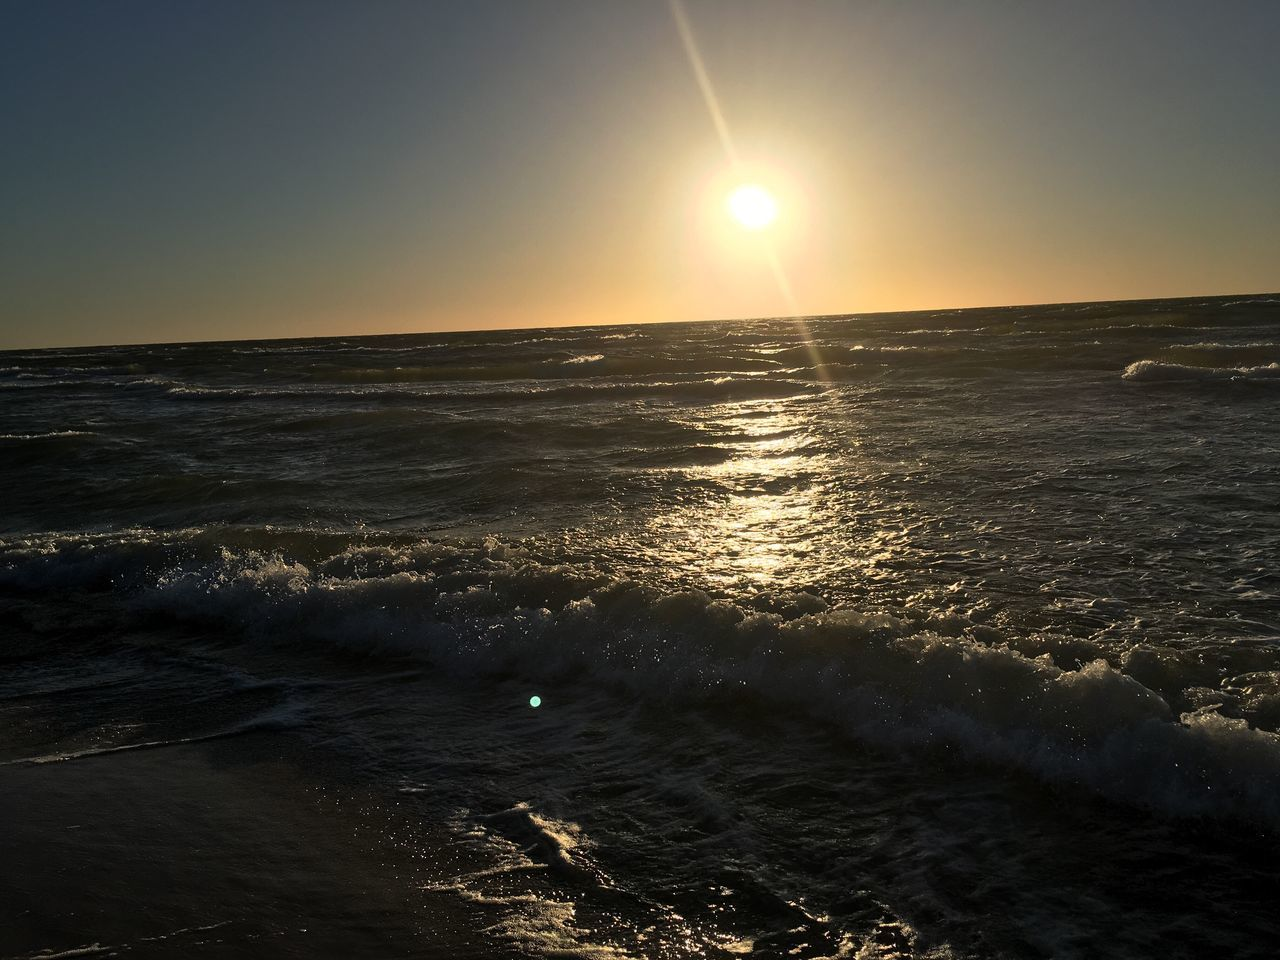 sea, sunset, sun, beauty in nature, scenics, nature, horizon over water, water, tranquility, tranquil scene, sunlight, sky, idyllic, no people, outdoors, silhouette, waterfront, clear sky, beach, wave, day